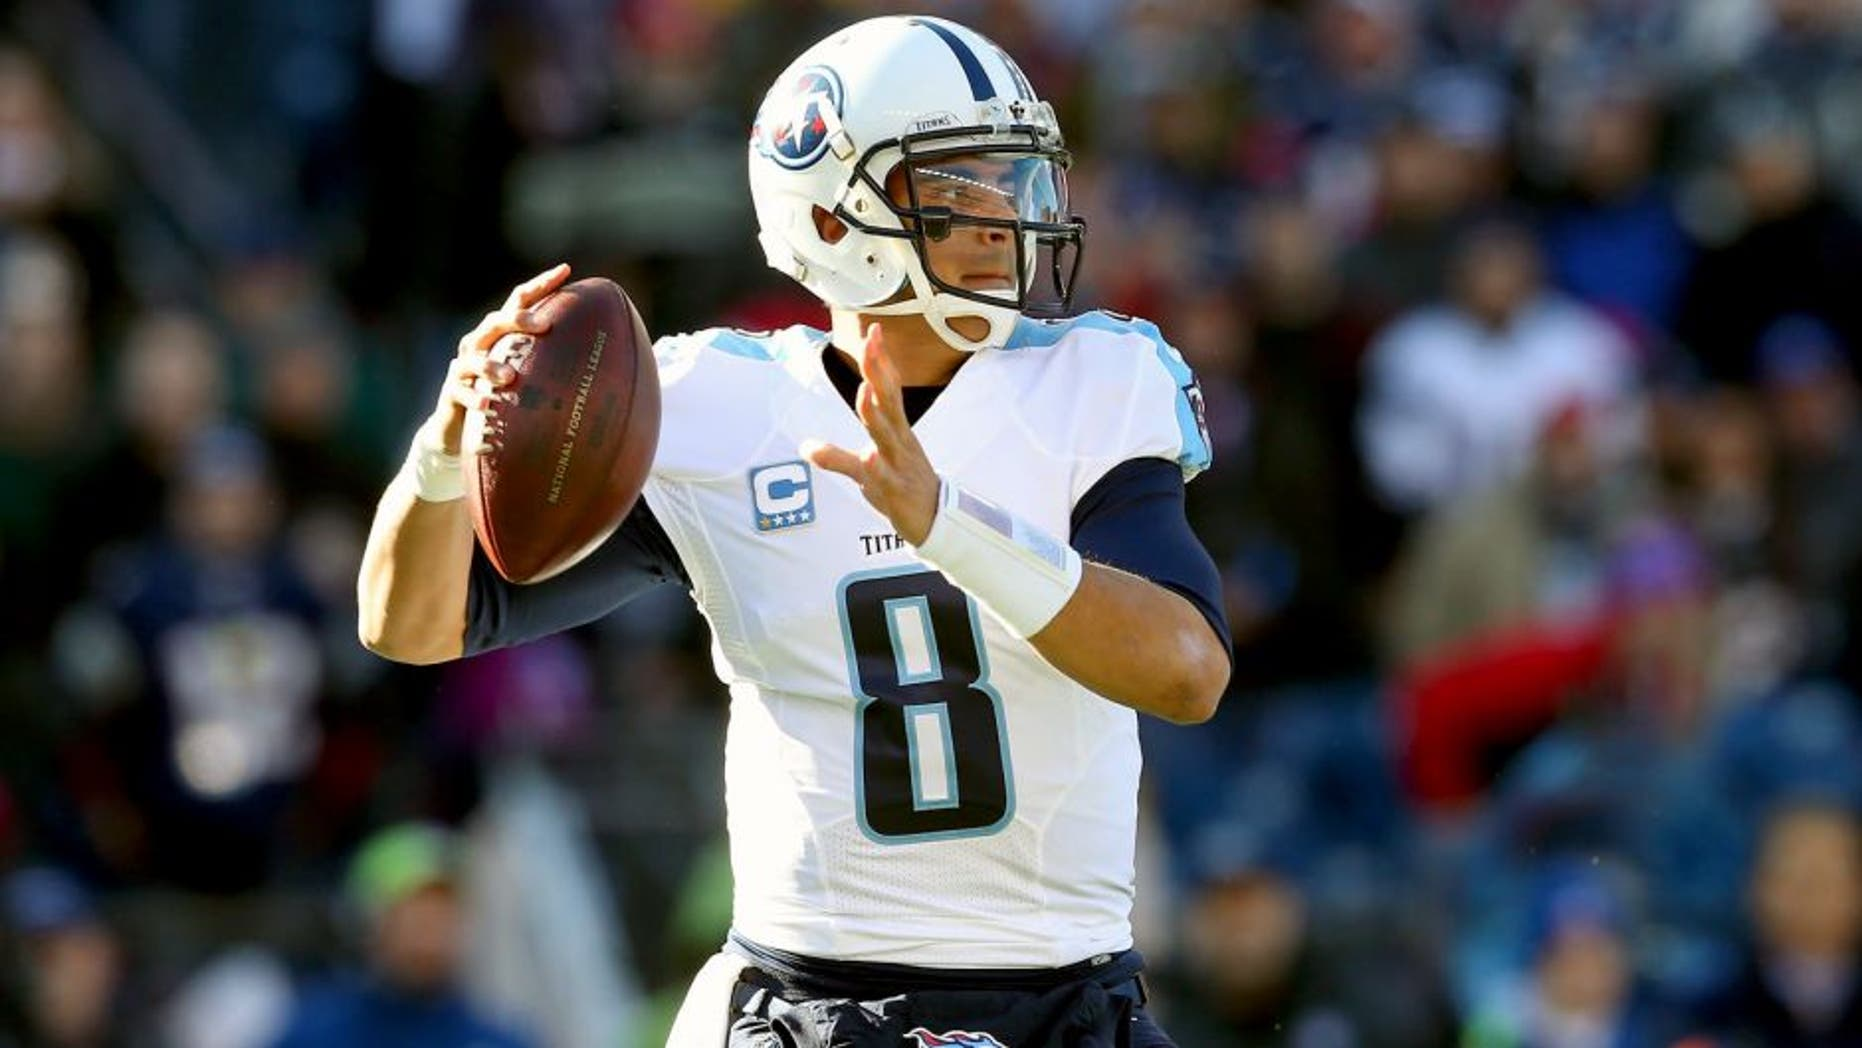 FOXBORO, MA - DECEMBER 20: Marcus Mariota #8 of the Tennessee Titans looks to pass during the first half against the New England Patriots at Gillette Stadium on December 20, 2015 in Foxboro, Massachusetts. (Photo by Jim Rogash/Getty Images)